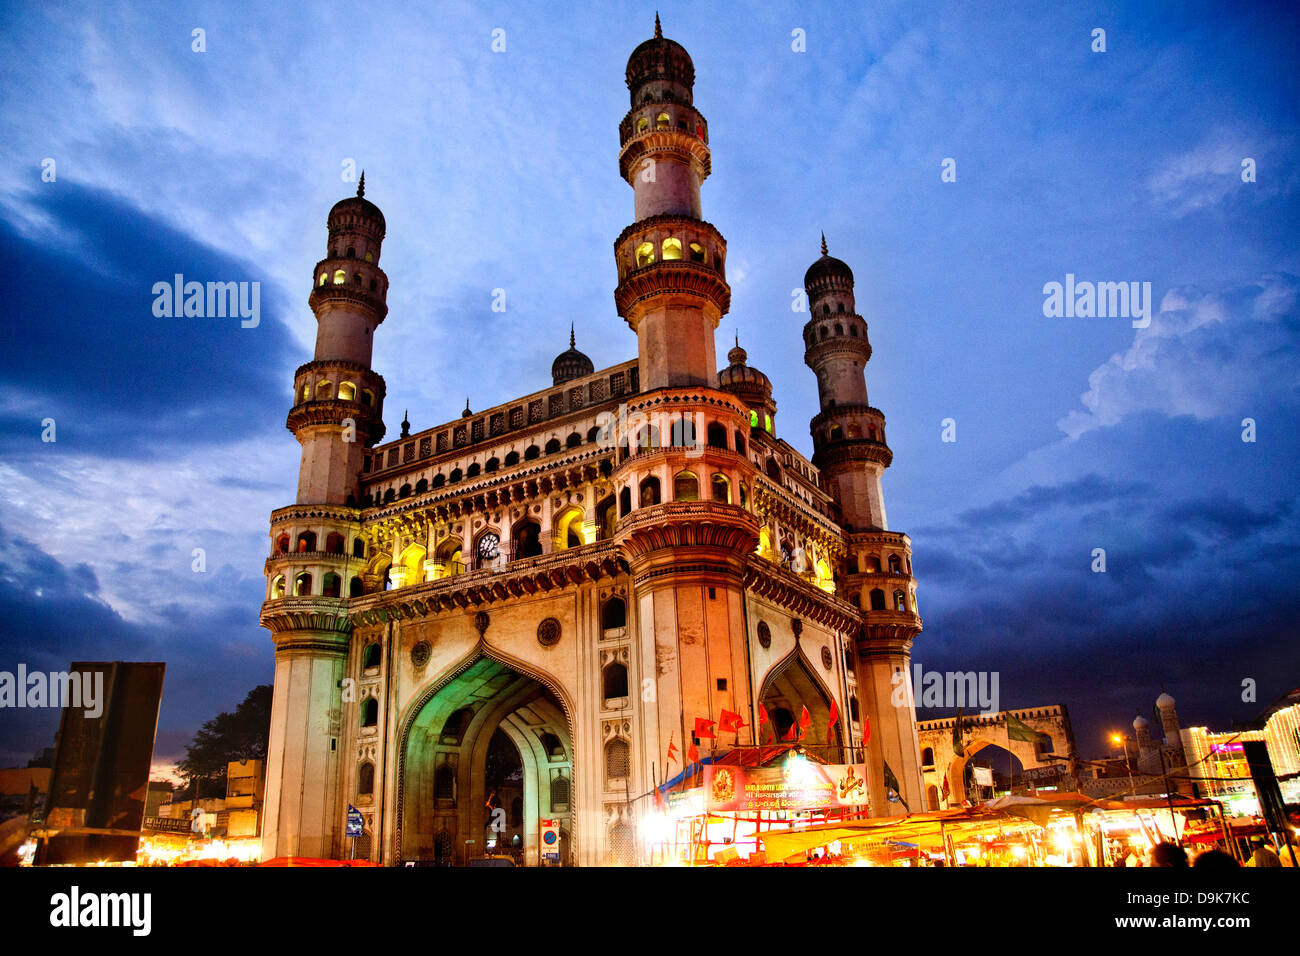 Charminar Hyderabad - History, How to Reach, Timings ...